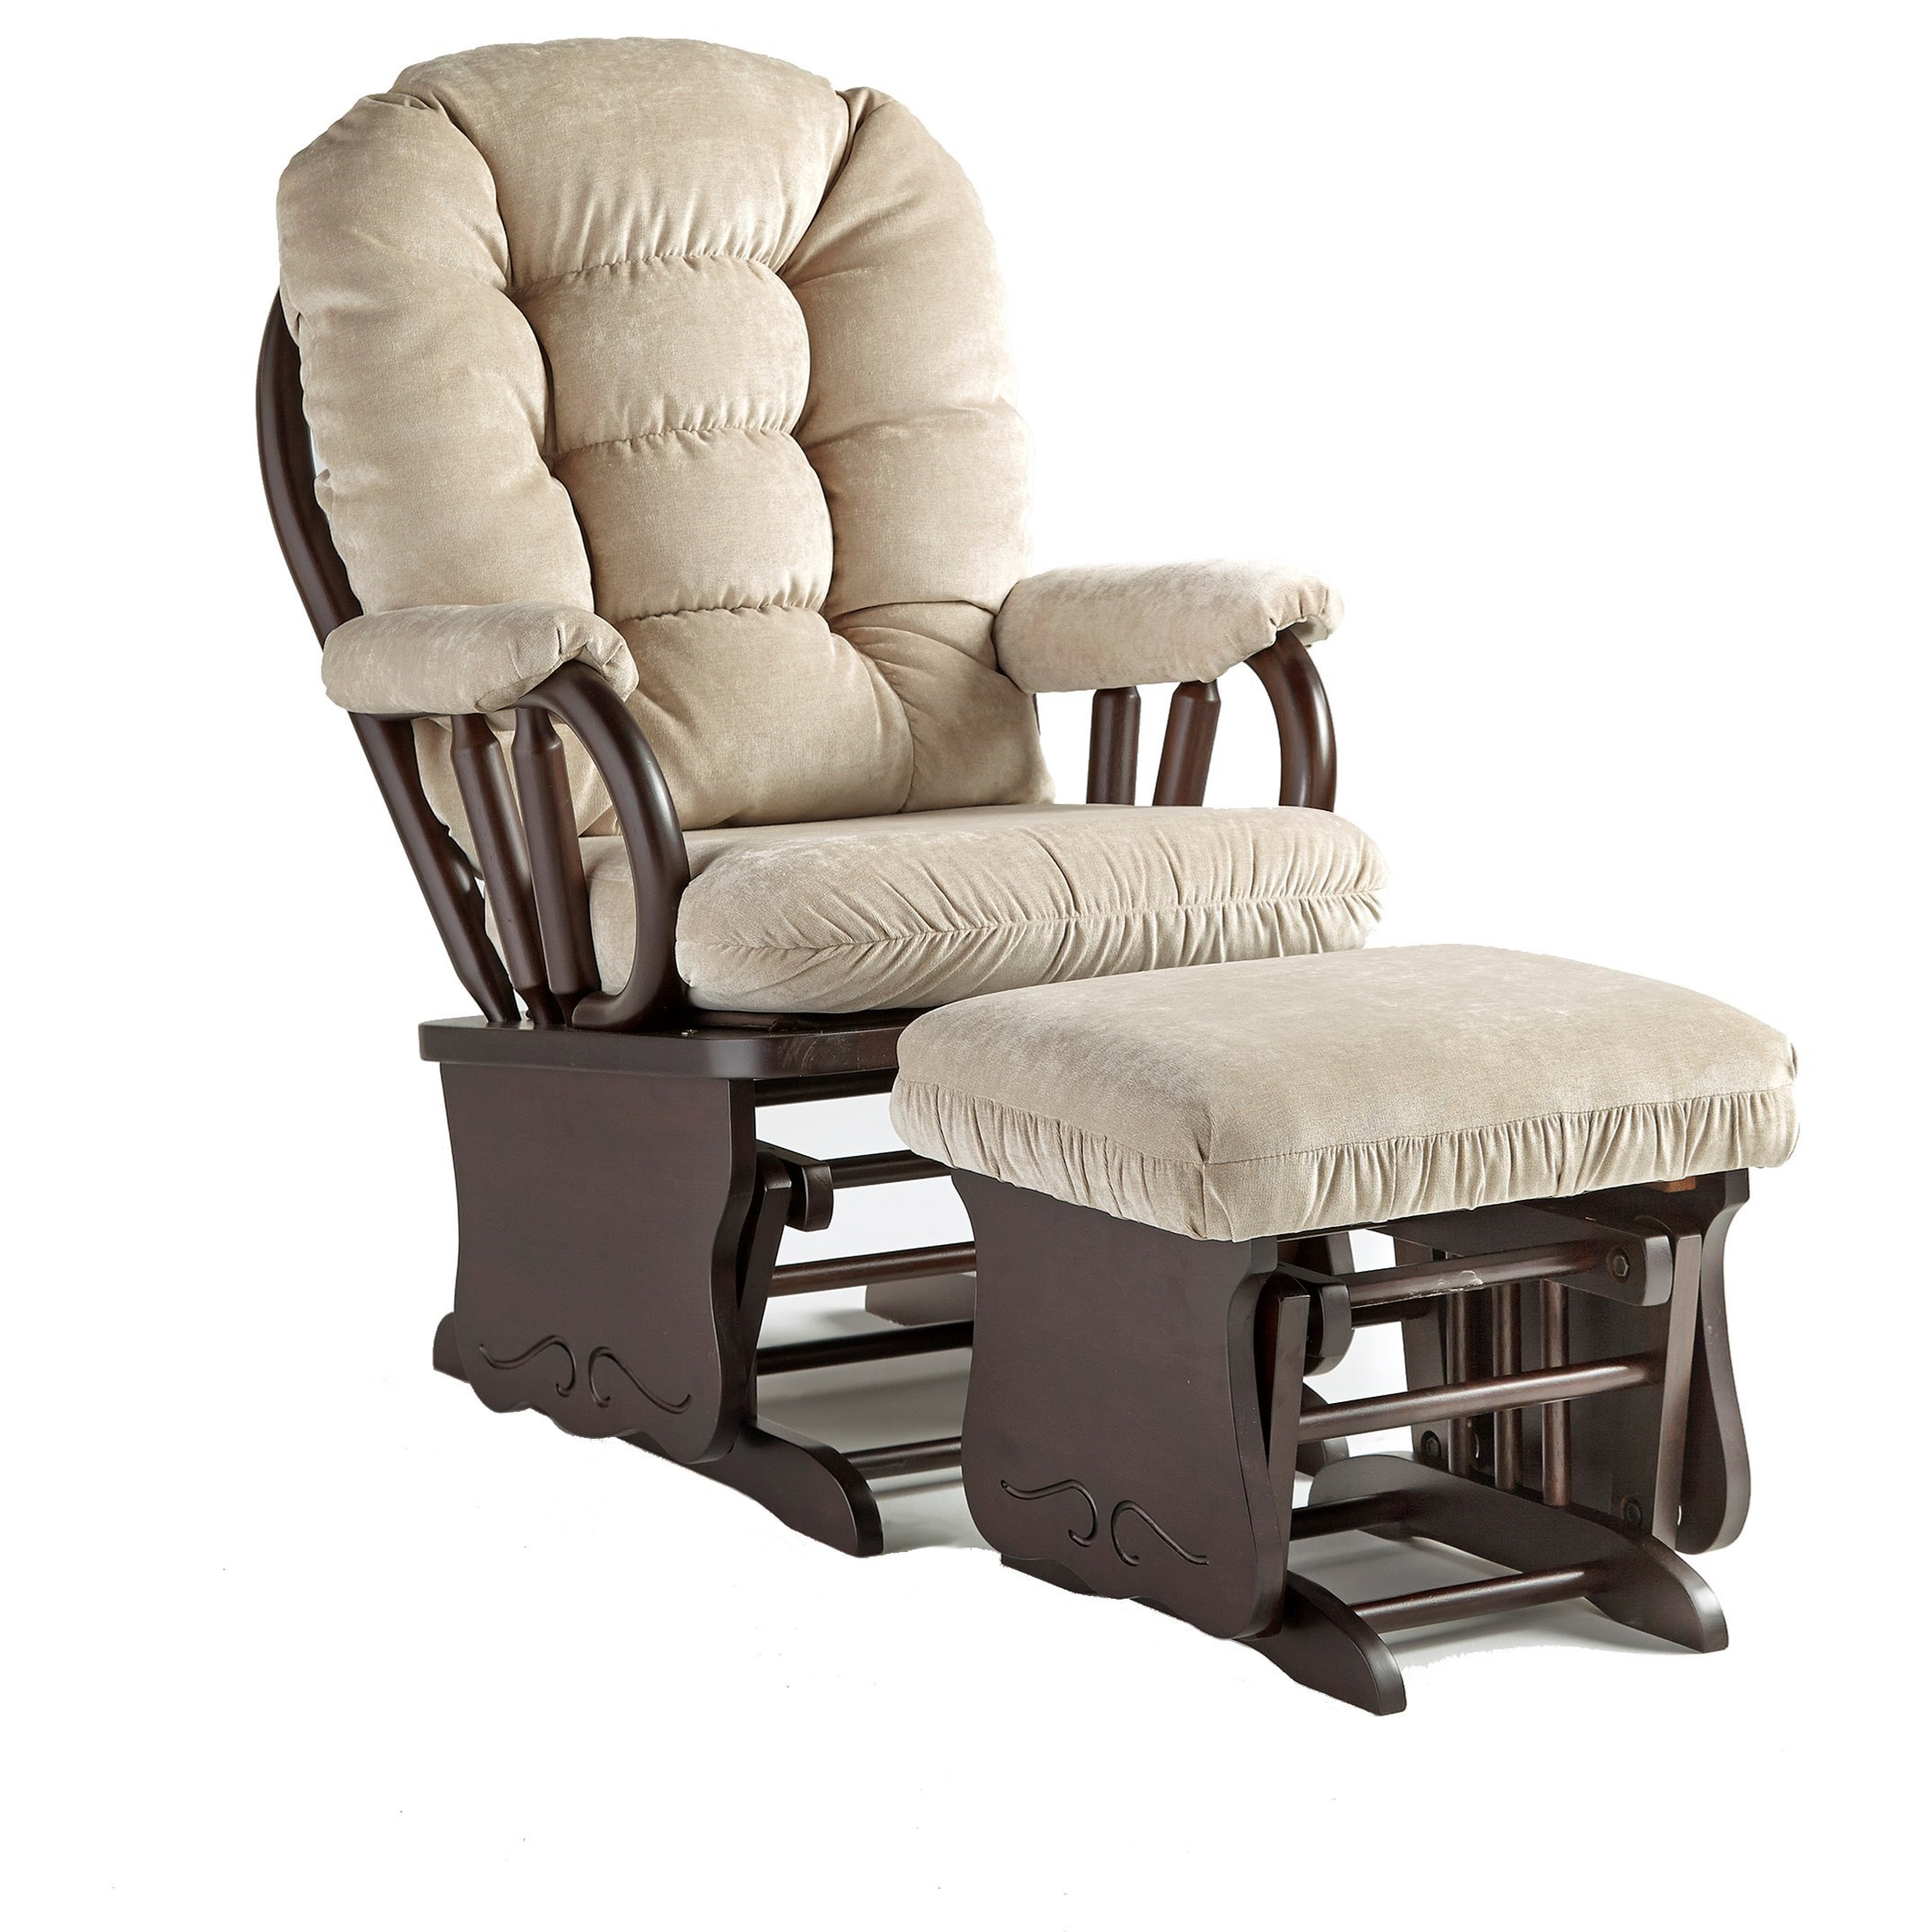 8107 Glide Rocker and Ottoman by Best Home Furnishings at Walker's Furniture